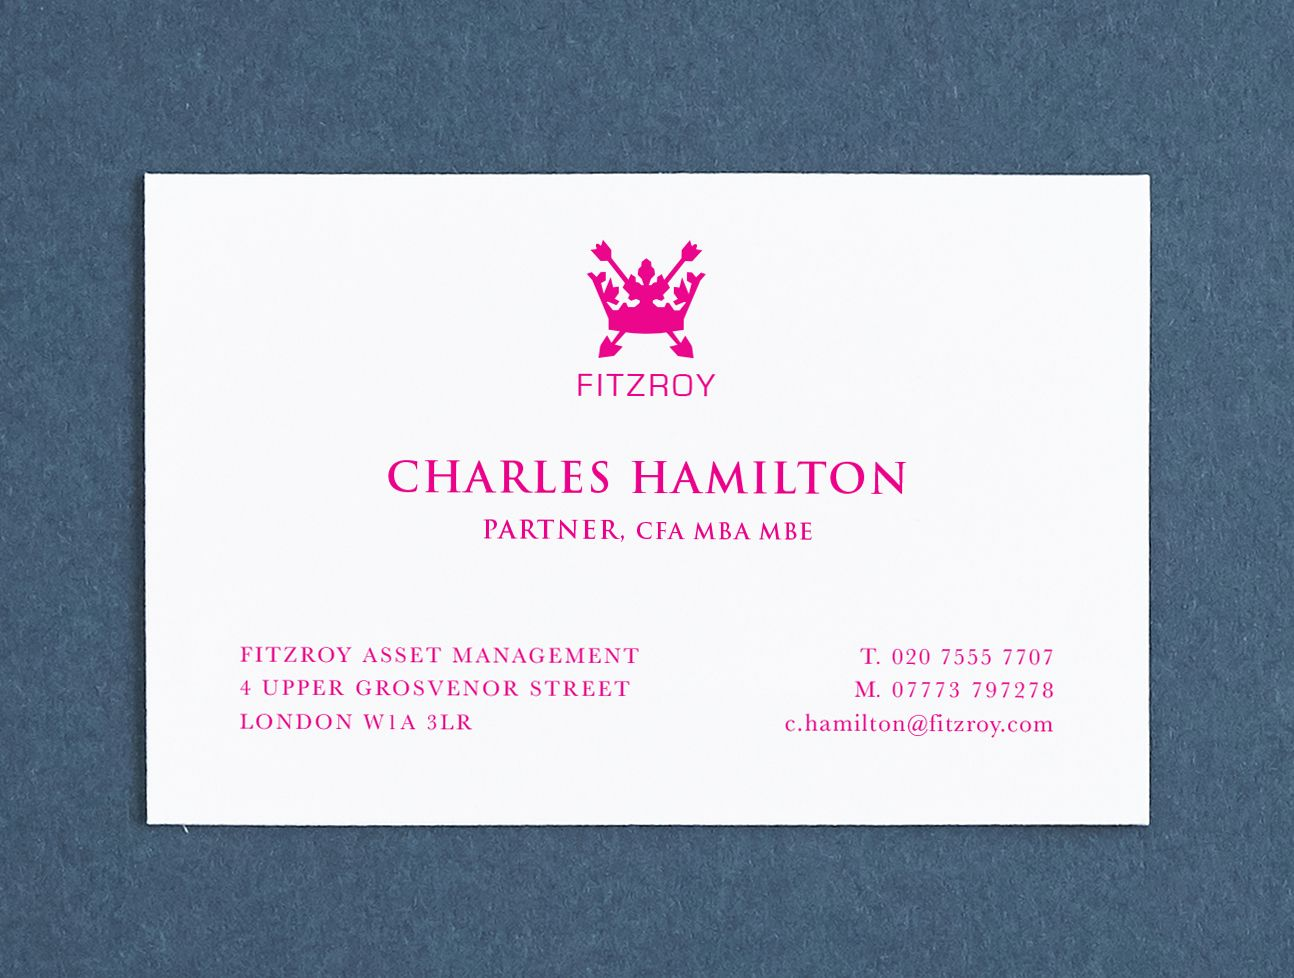 Printed name cards custom made business cards personalised printed name cards custom made business cards personalised professional calling cards business stationery hot reheart Choice Image